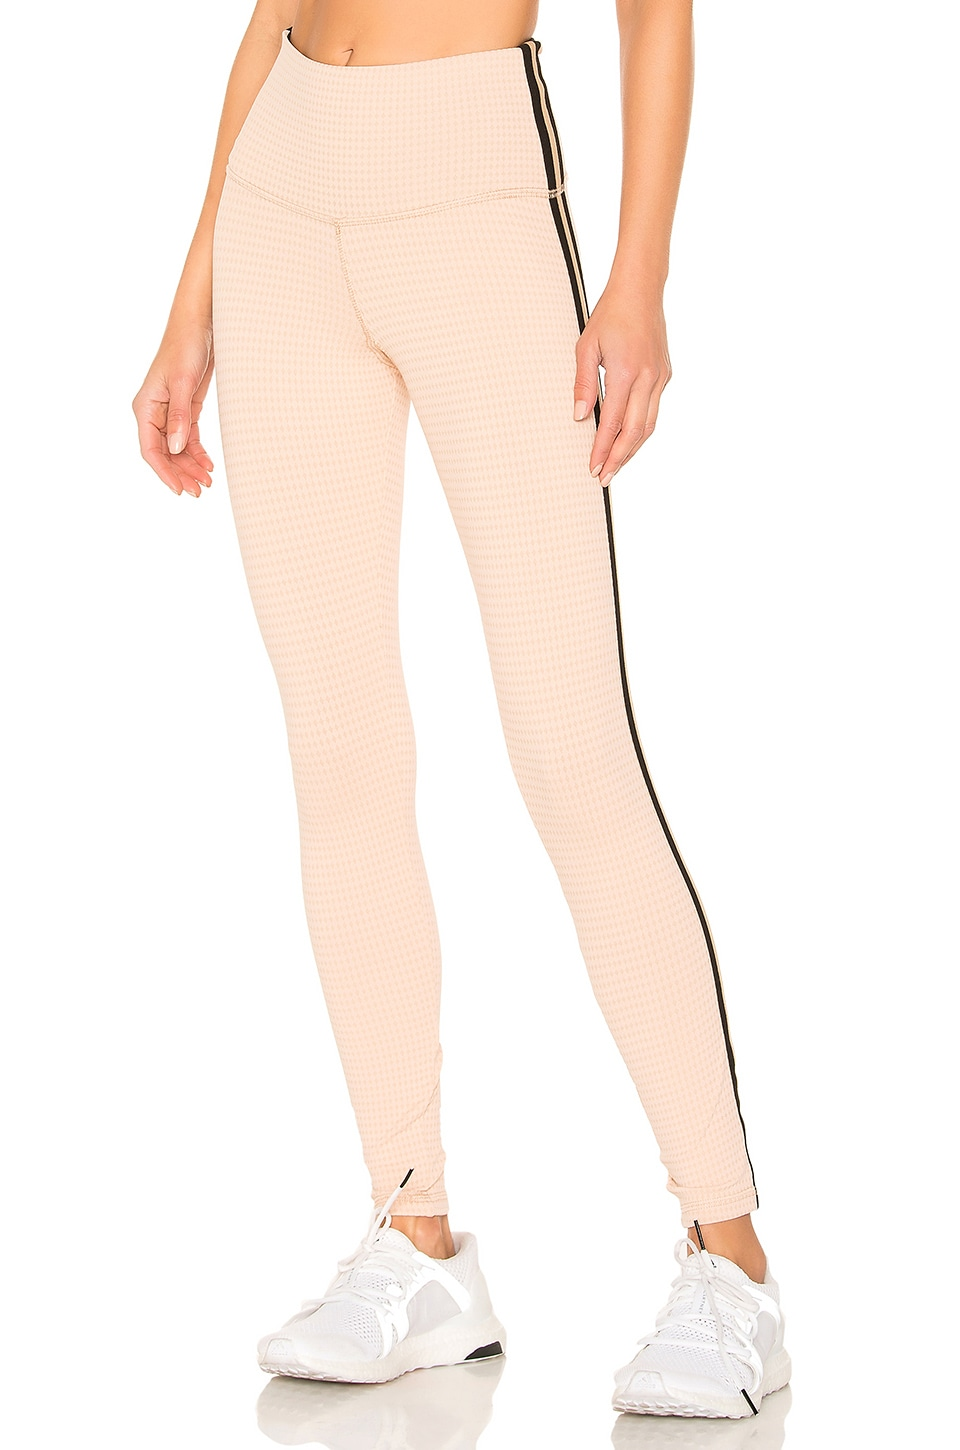 STRUT-THIS x Sivan Ayla Unfiltered Pant in Tan